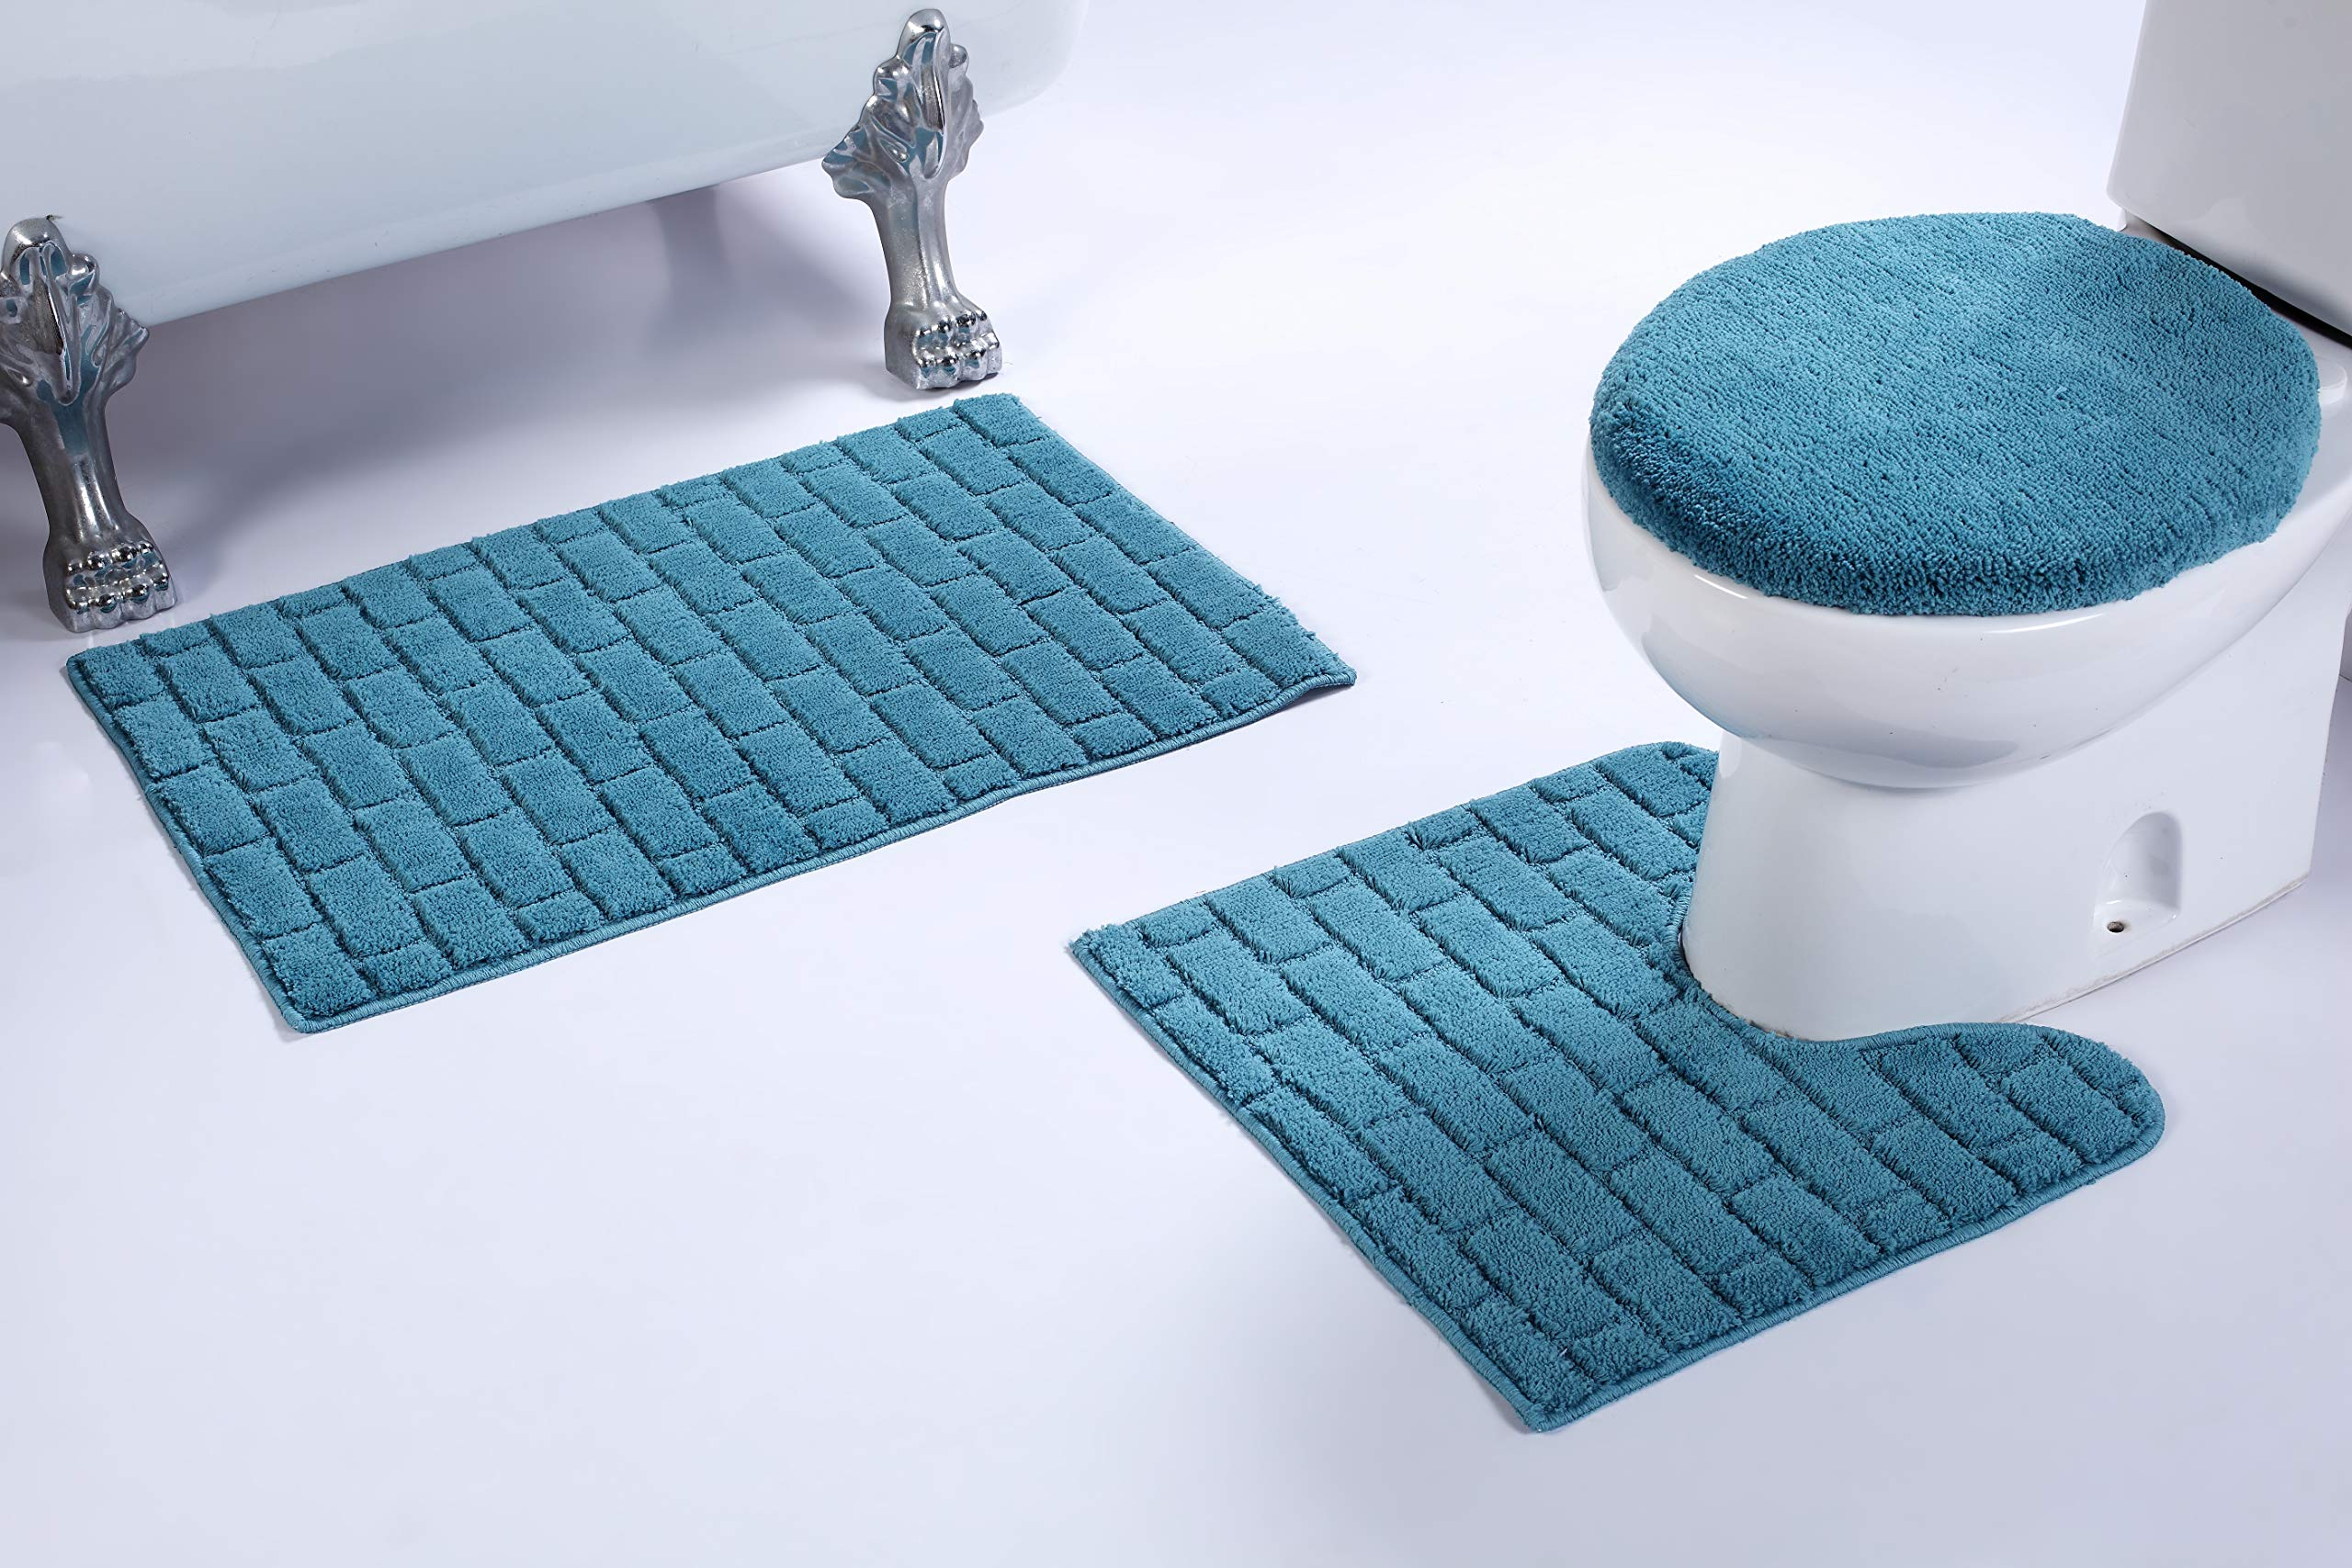 Fancy Linen 3pc Non-Slip Bath Mat Set with Brick Pattern Solid Turquoise Bathroom U-Shaped Contour Rug, Mat and Toilet Lid Cover New # Bath 67